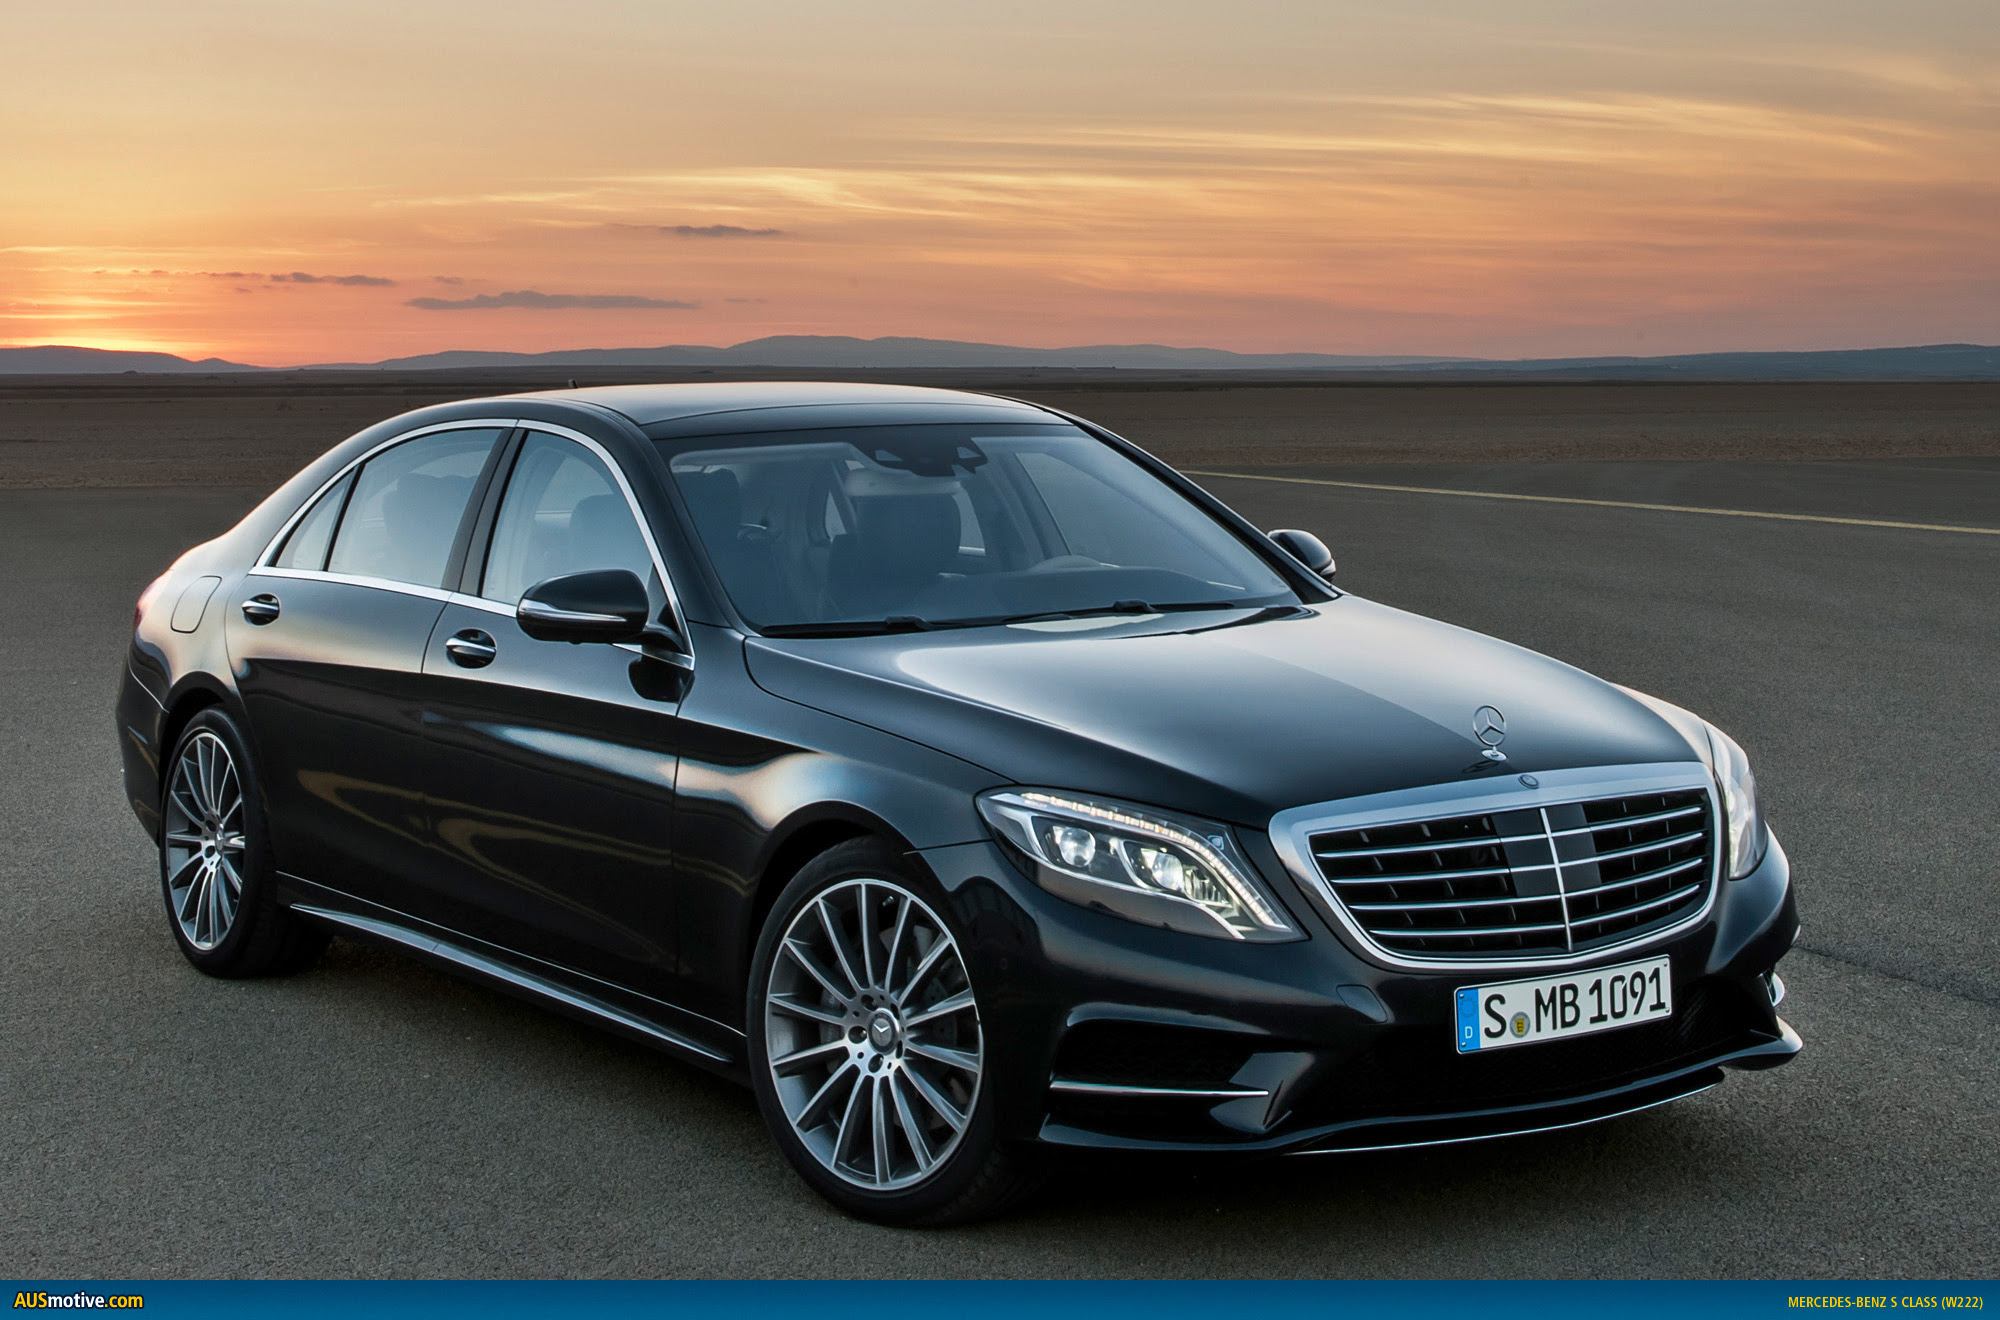 AUSmotive.com \u00bb 2014 MercedesBenz S Class revealed